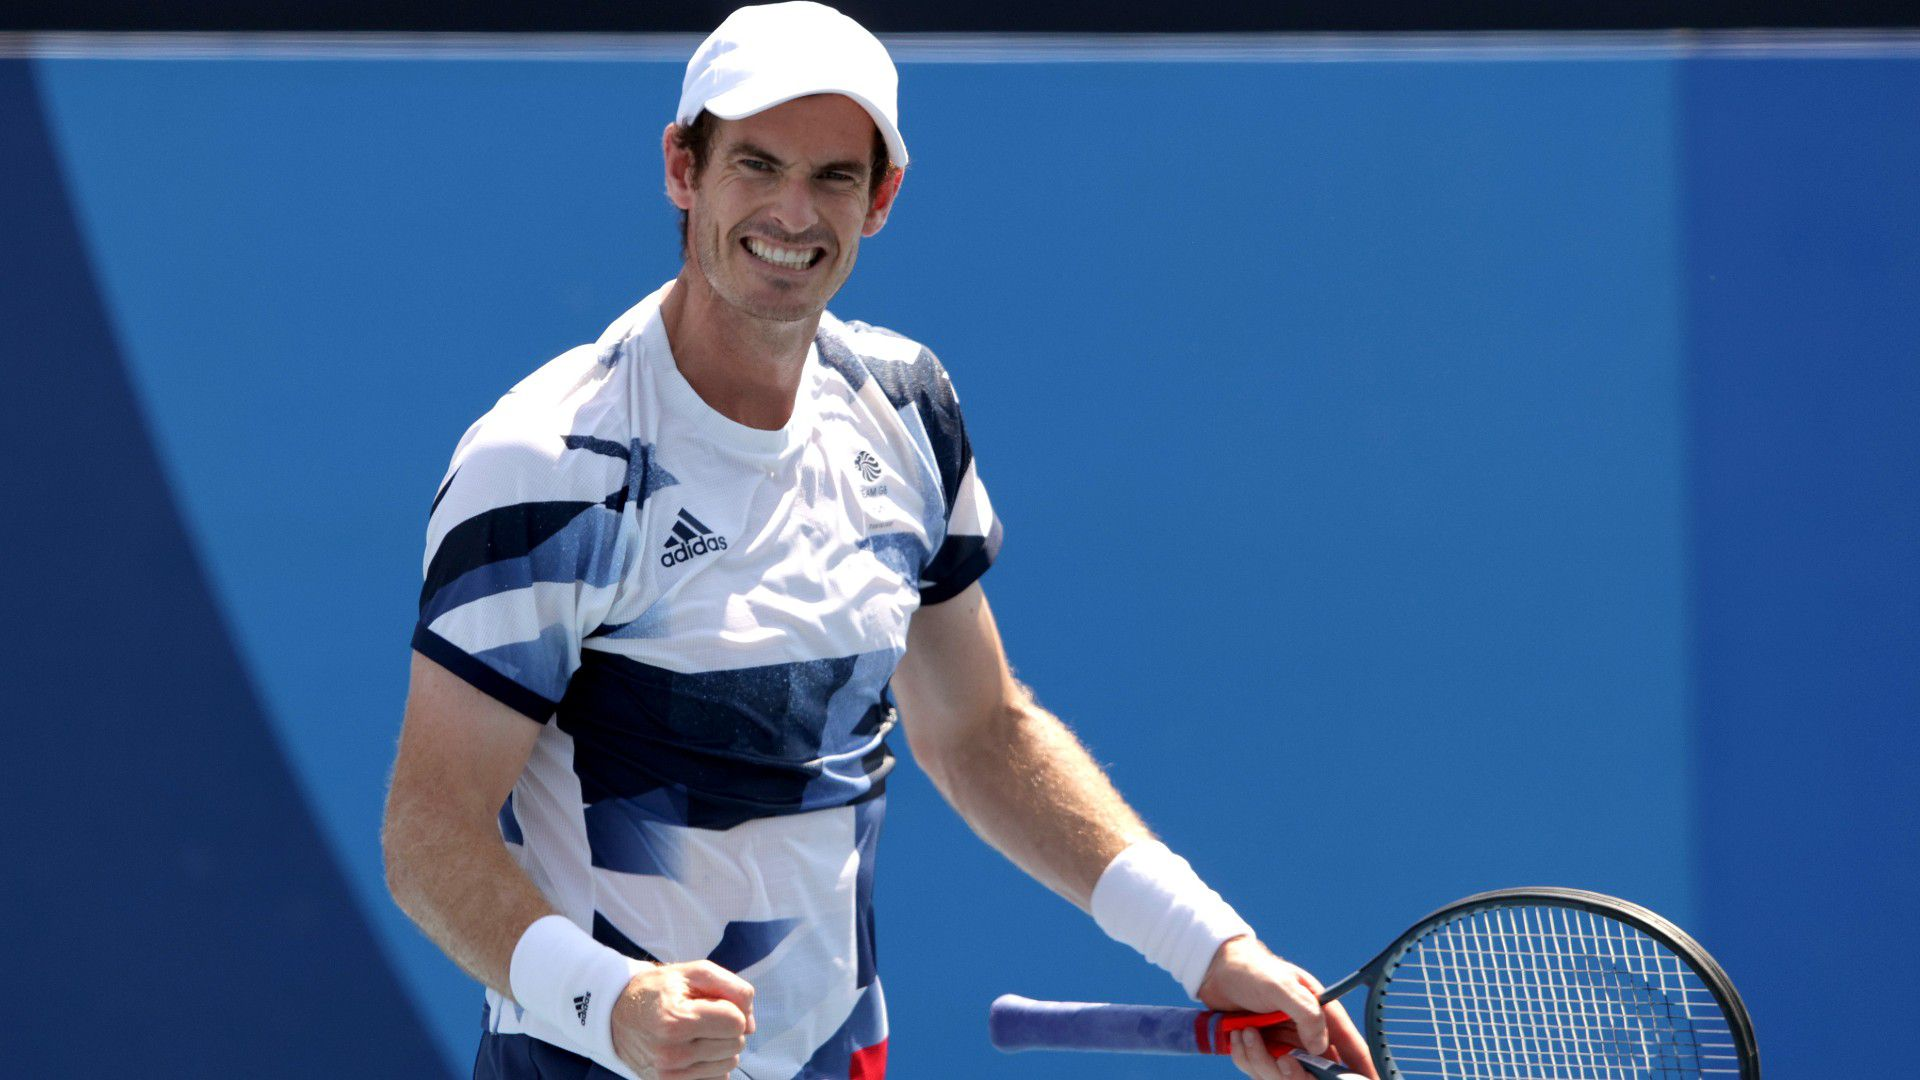 Andy Murray won't defend Olympics crown